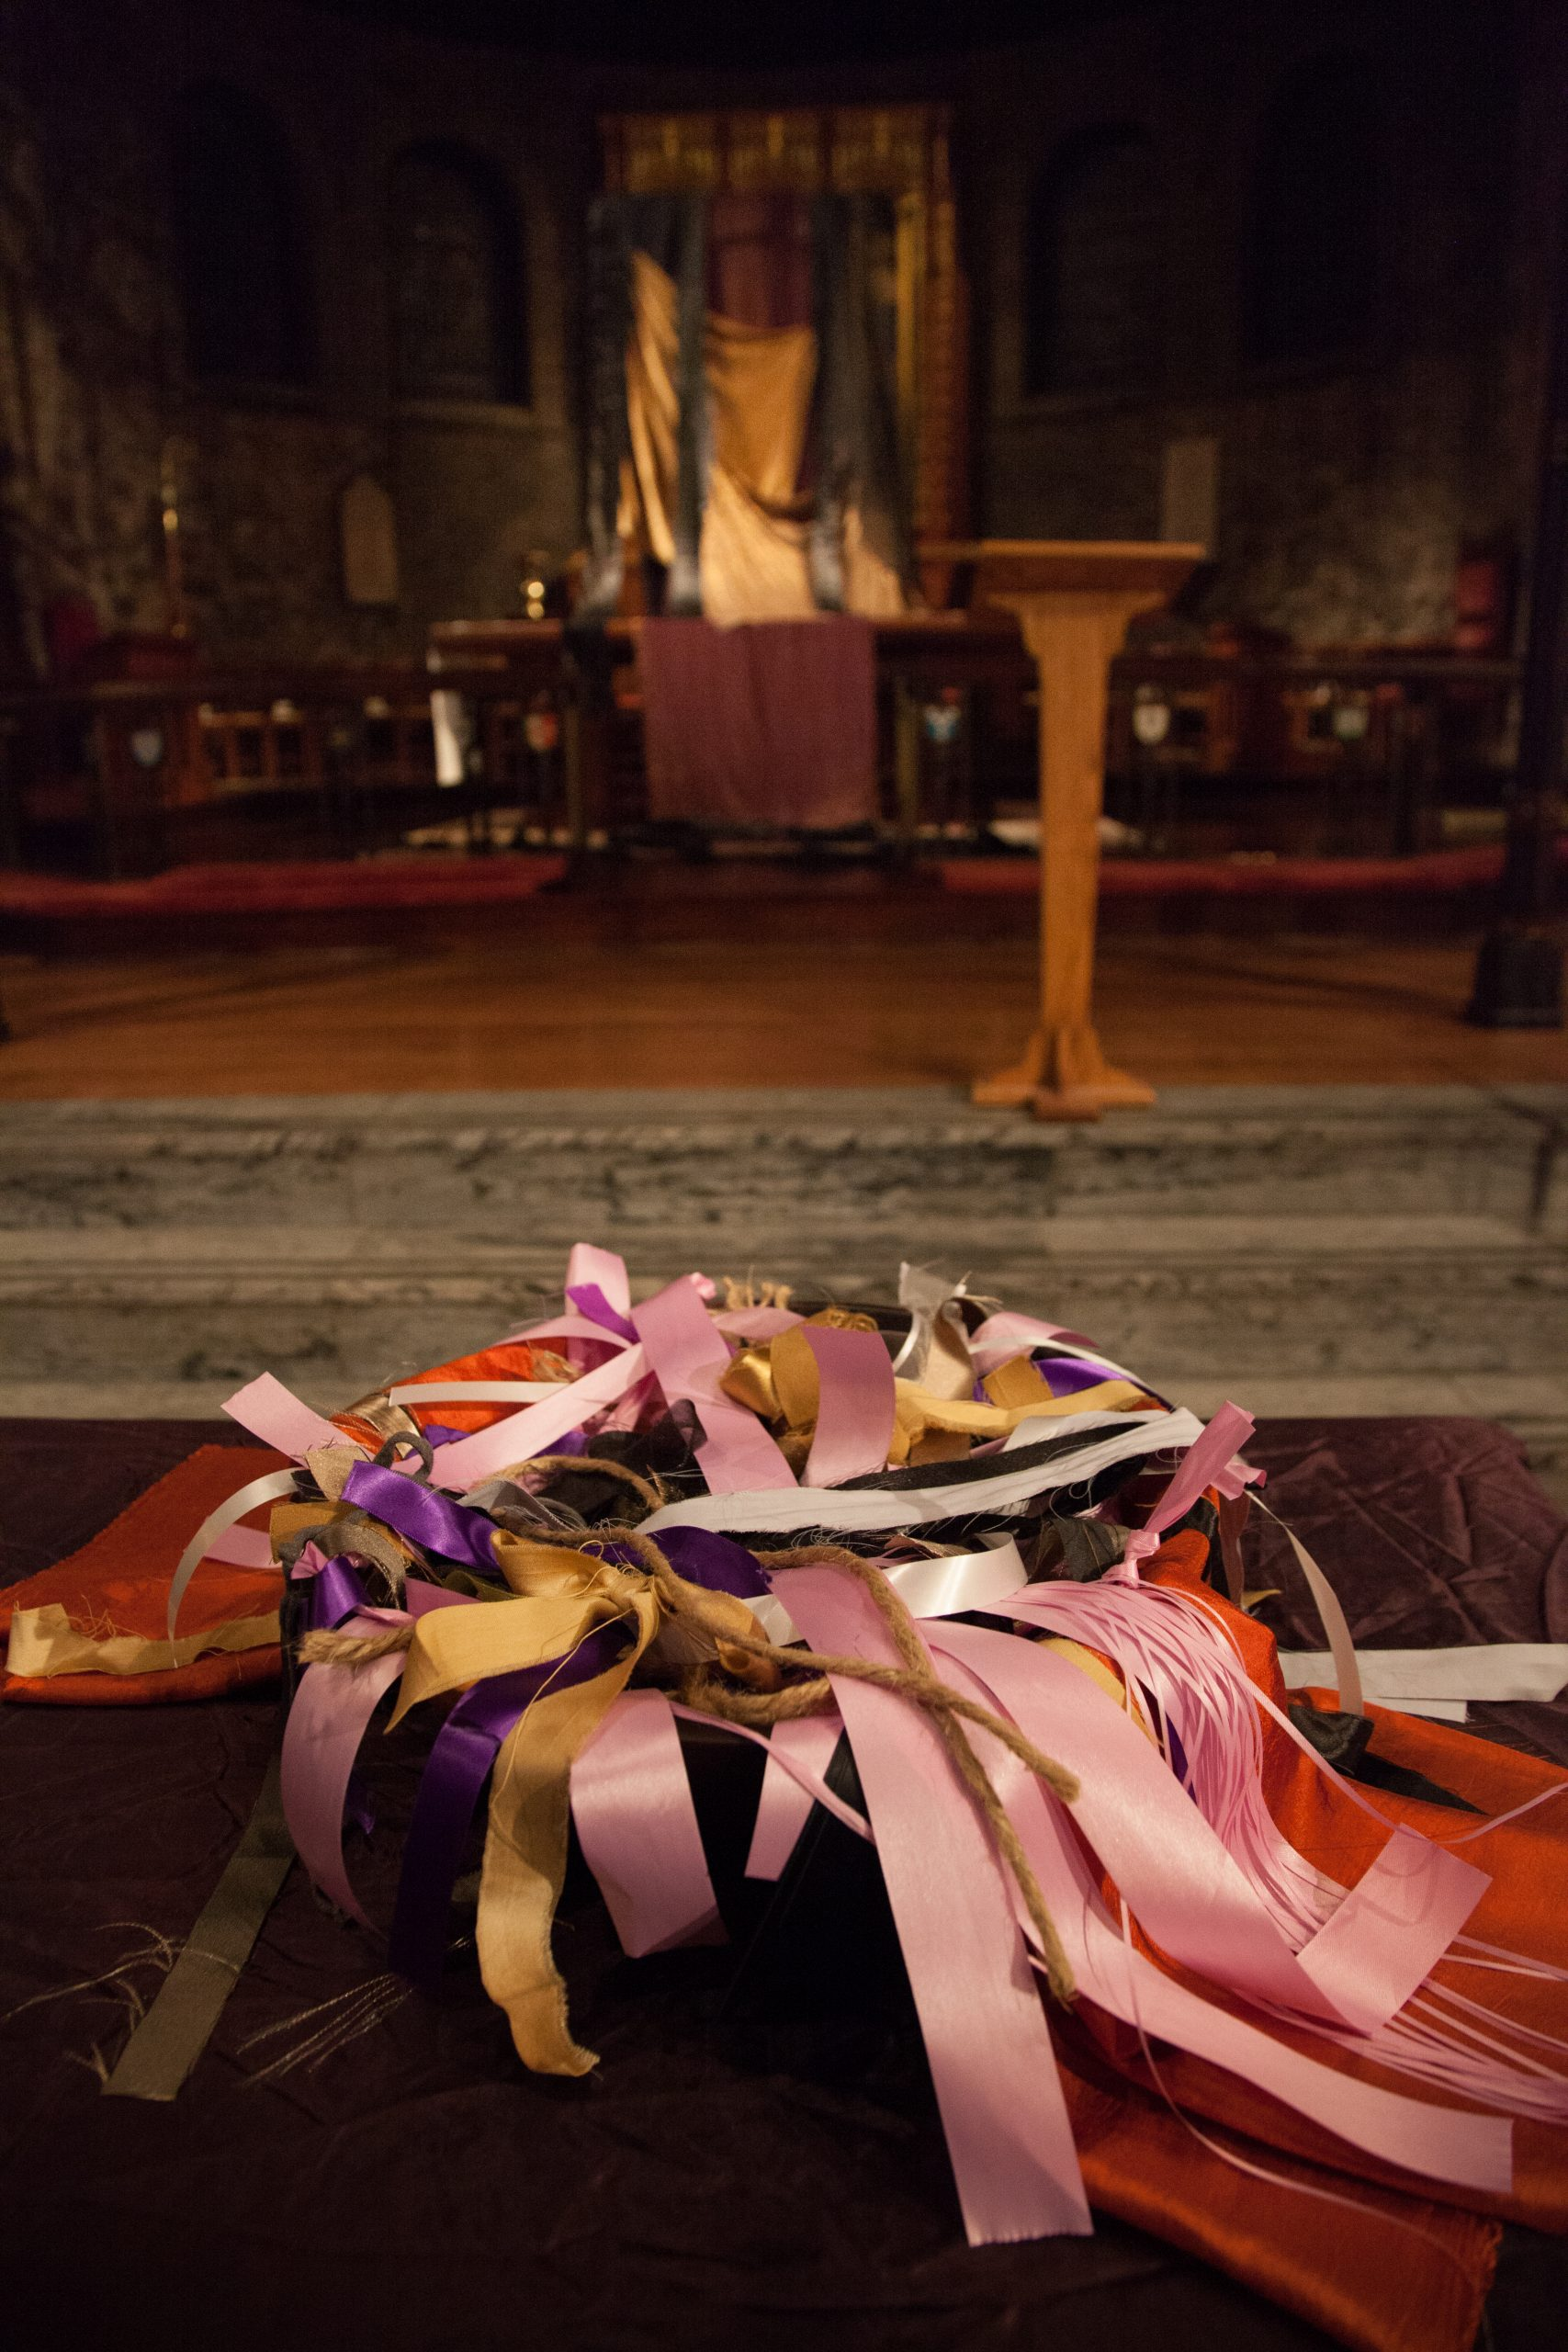 At the Service of Lament and Hope at KC2015, each person gathered received a ribbon to hold throughout the service.